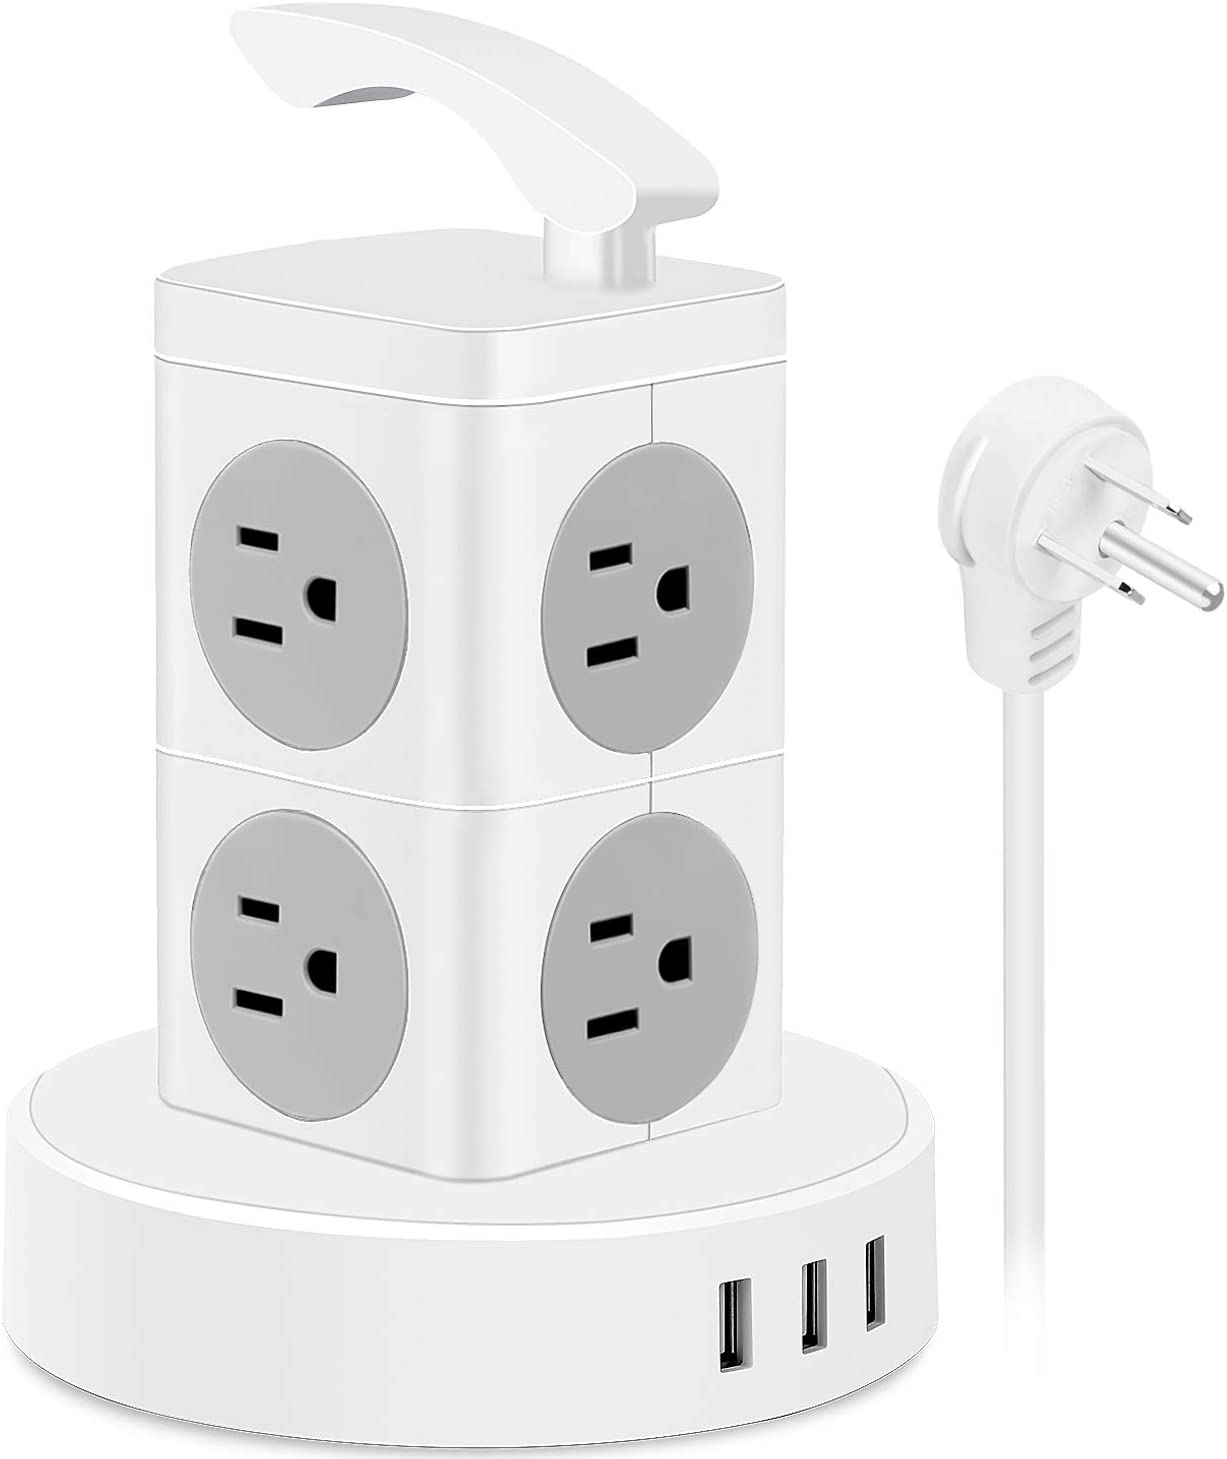 Power Strip Tower Surge Protector Ranking TOP12 8 Outlets Elec Ports USB Max 89% OFF AC 3